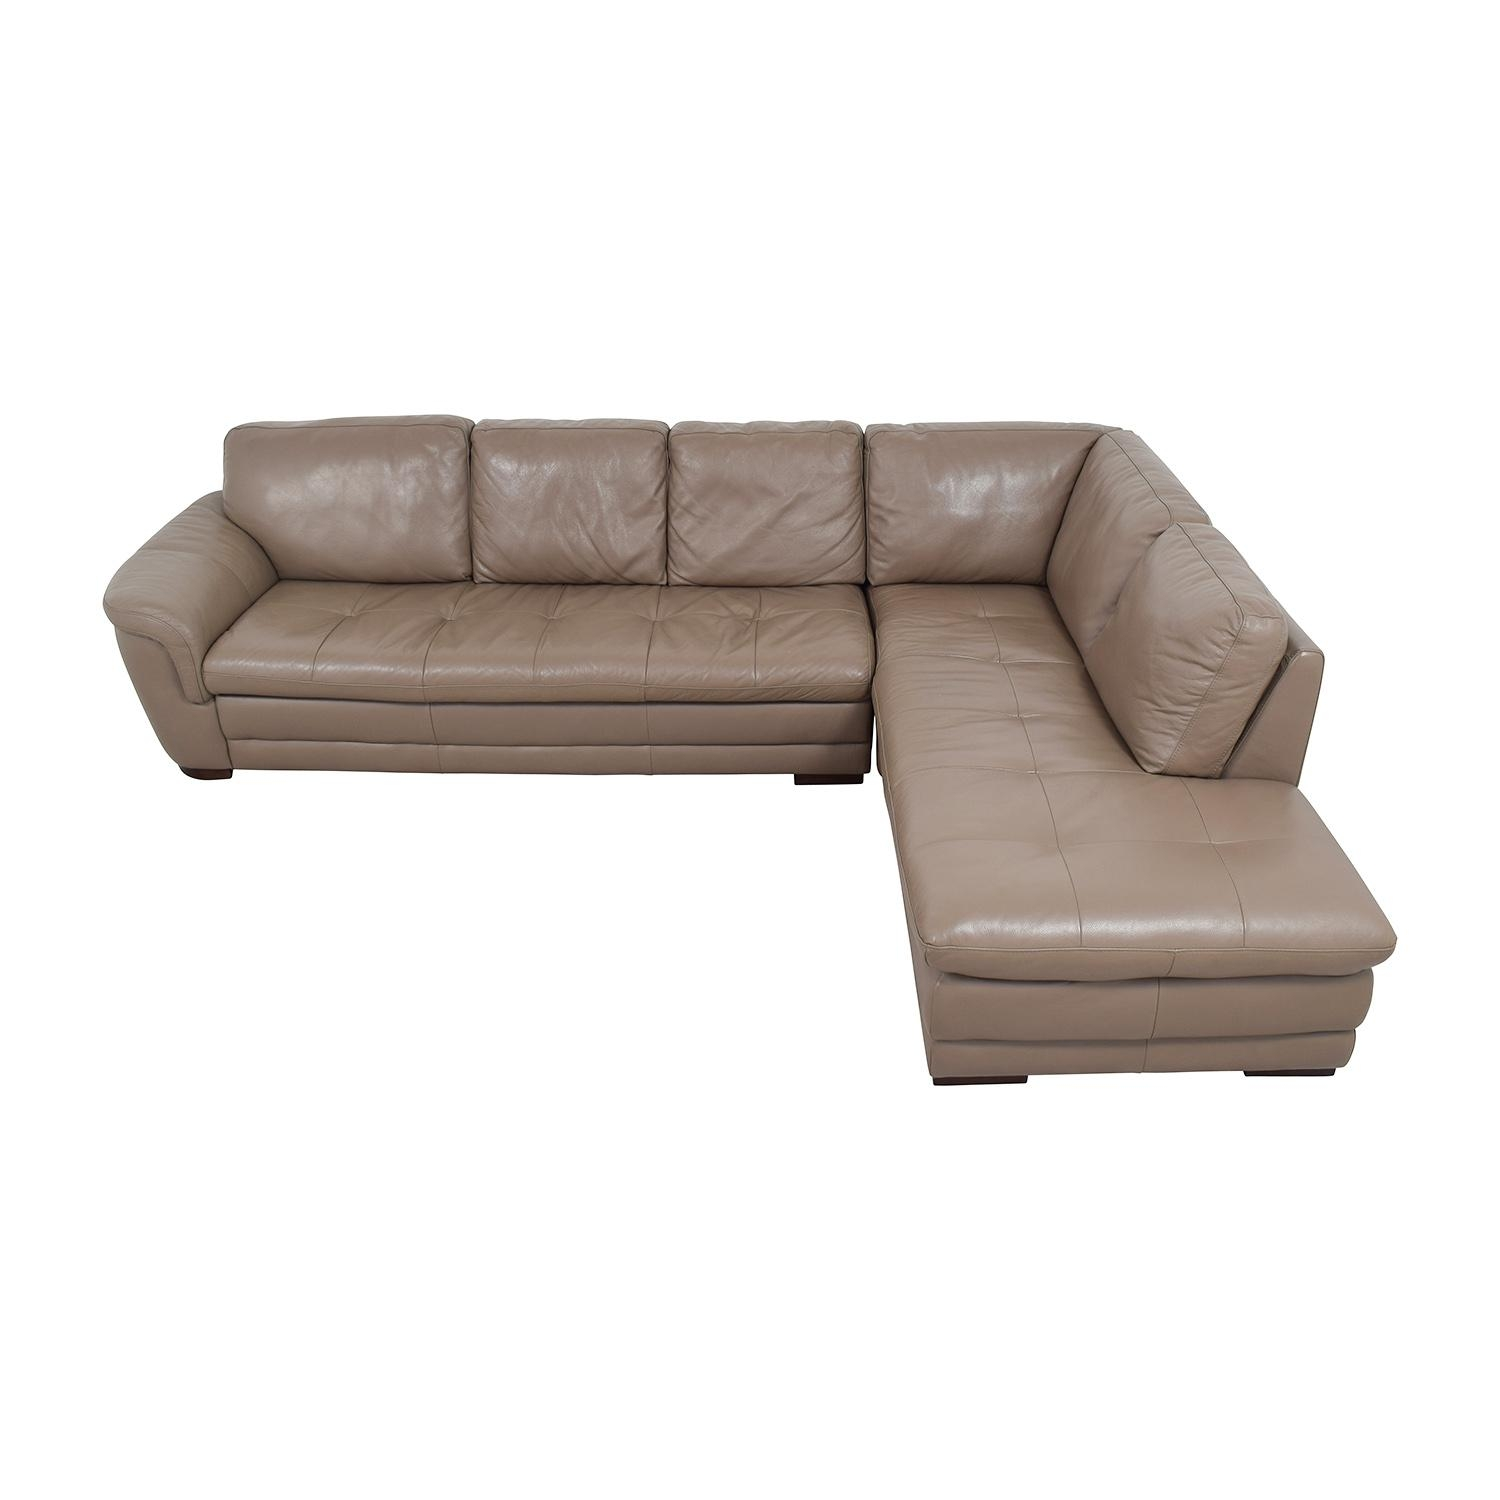 71% Off - Raymour And Flanigan Raymour & Flanigan Tan Tufted for Used Sectionals